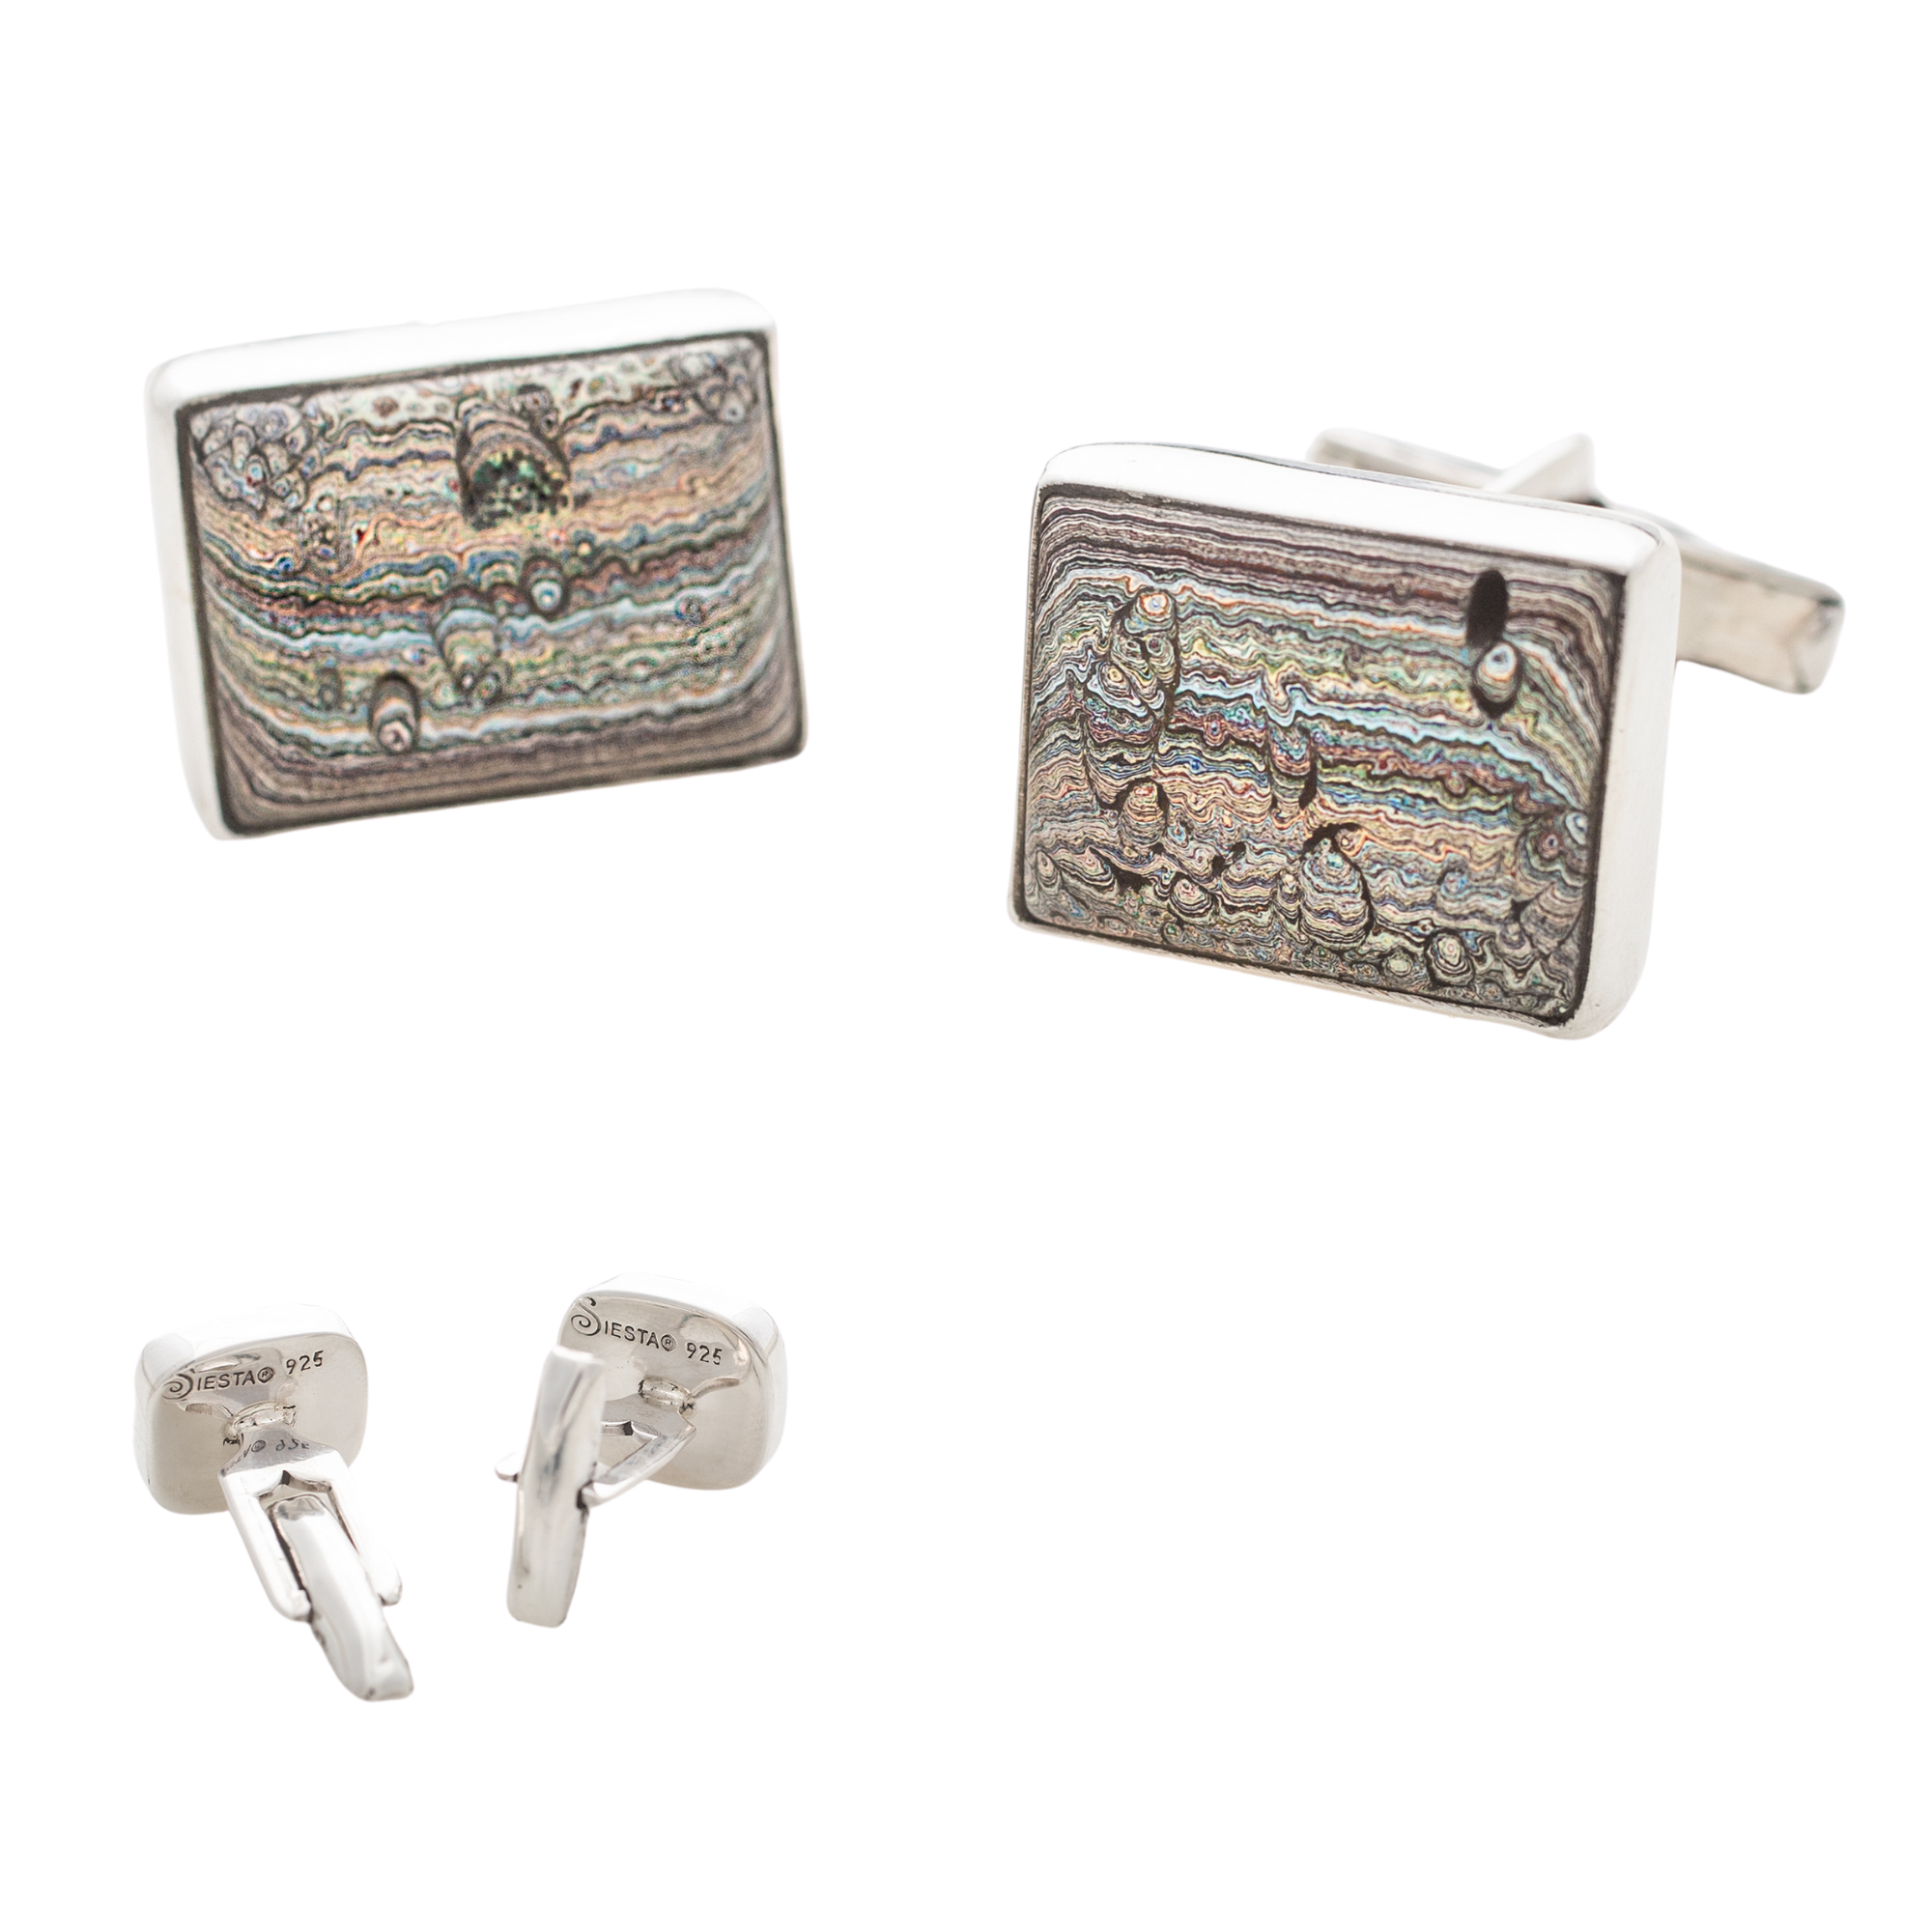 Fordite Vintage Ford Cuff Links 2